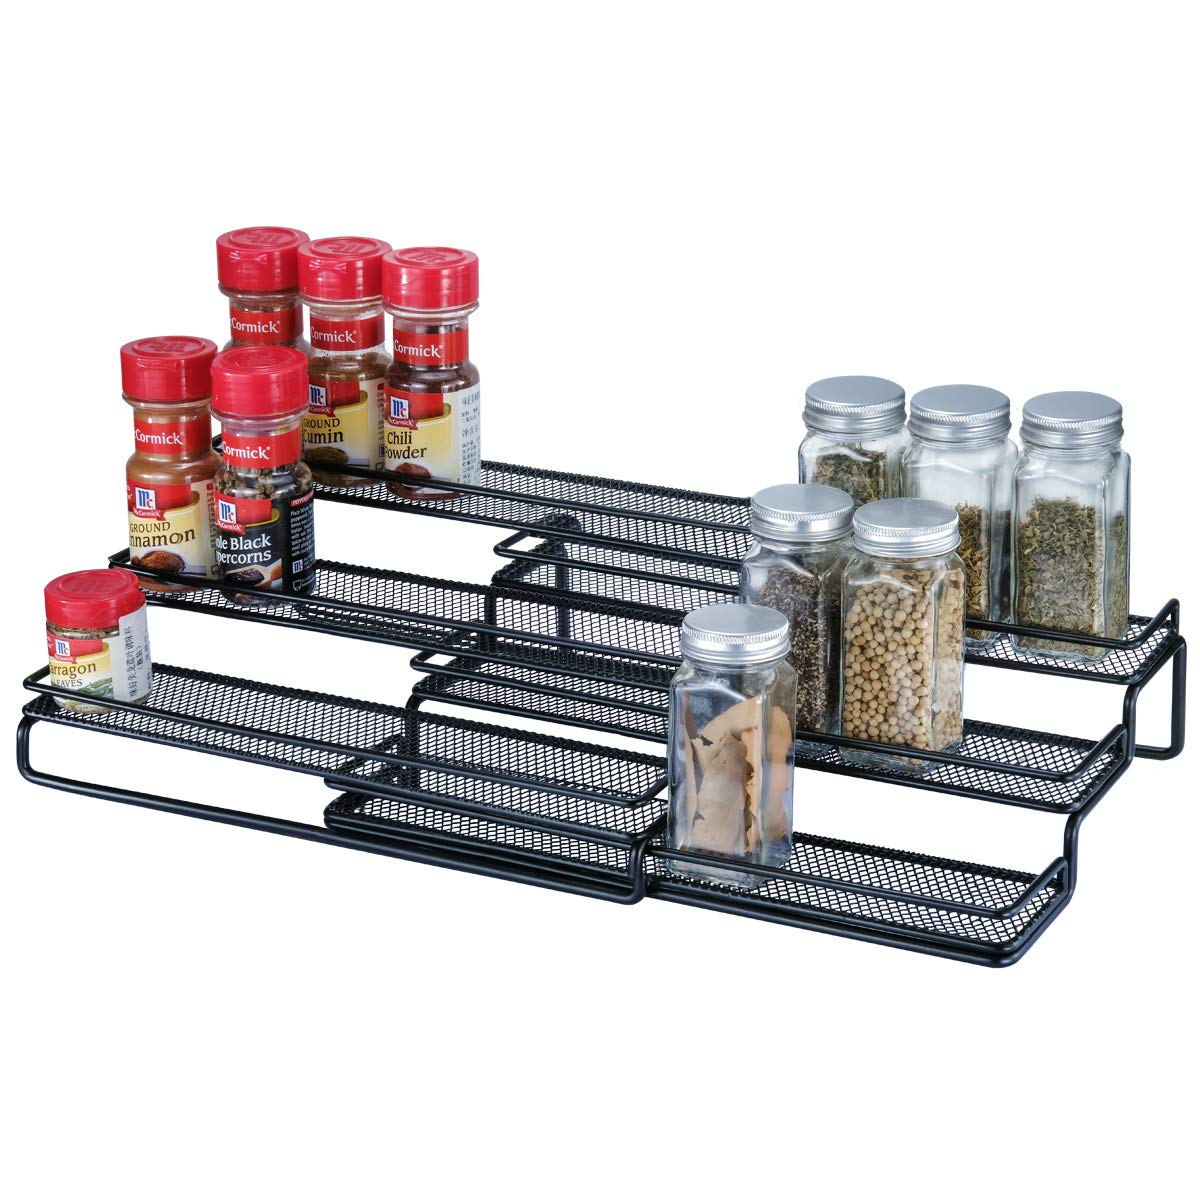 3 Tier Expandable Cabinet Spice Rack Organizer - Step Shelf with Protection Railing (12.5 to 25''W), Black by GONGSHI